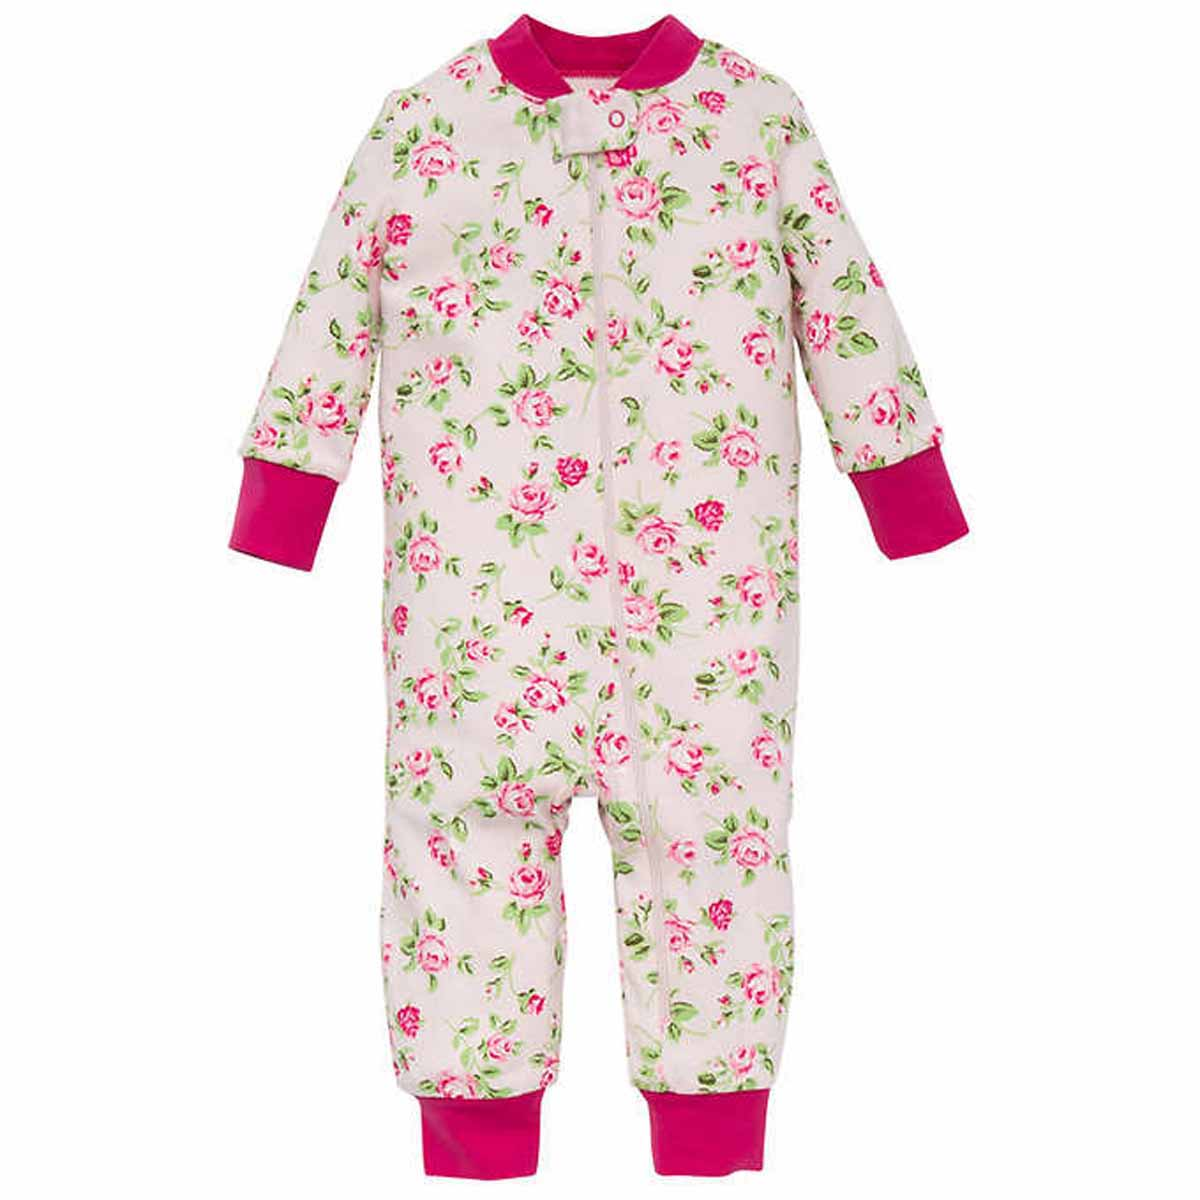 bb9a32080 LITTLE ME Baby or Toddler Girls 1-Piece Snug Fitting Sleeper Pajama ...